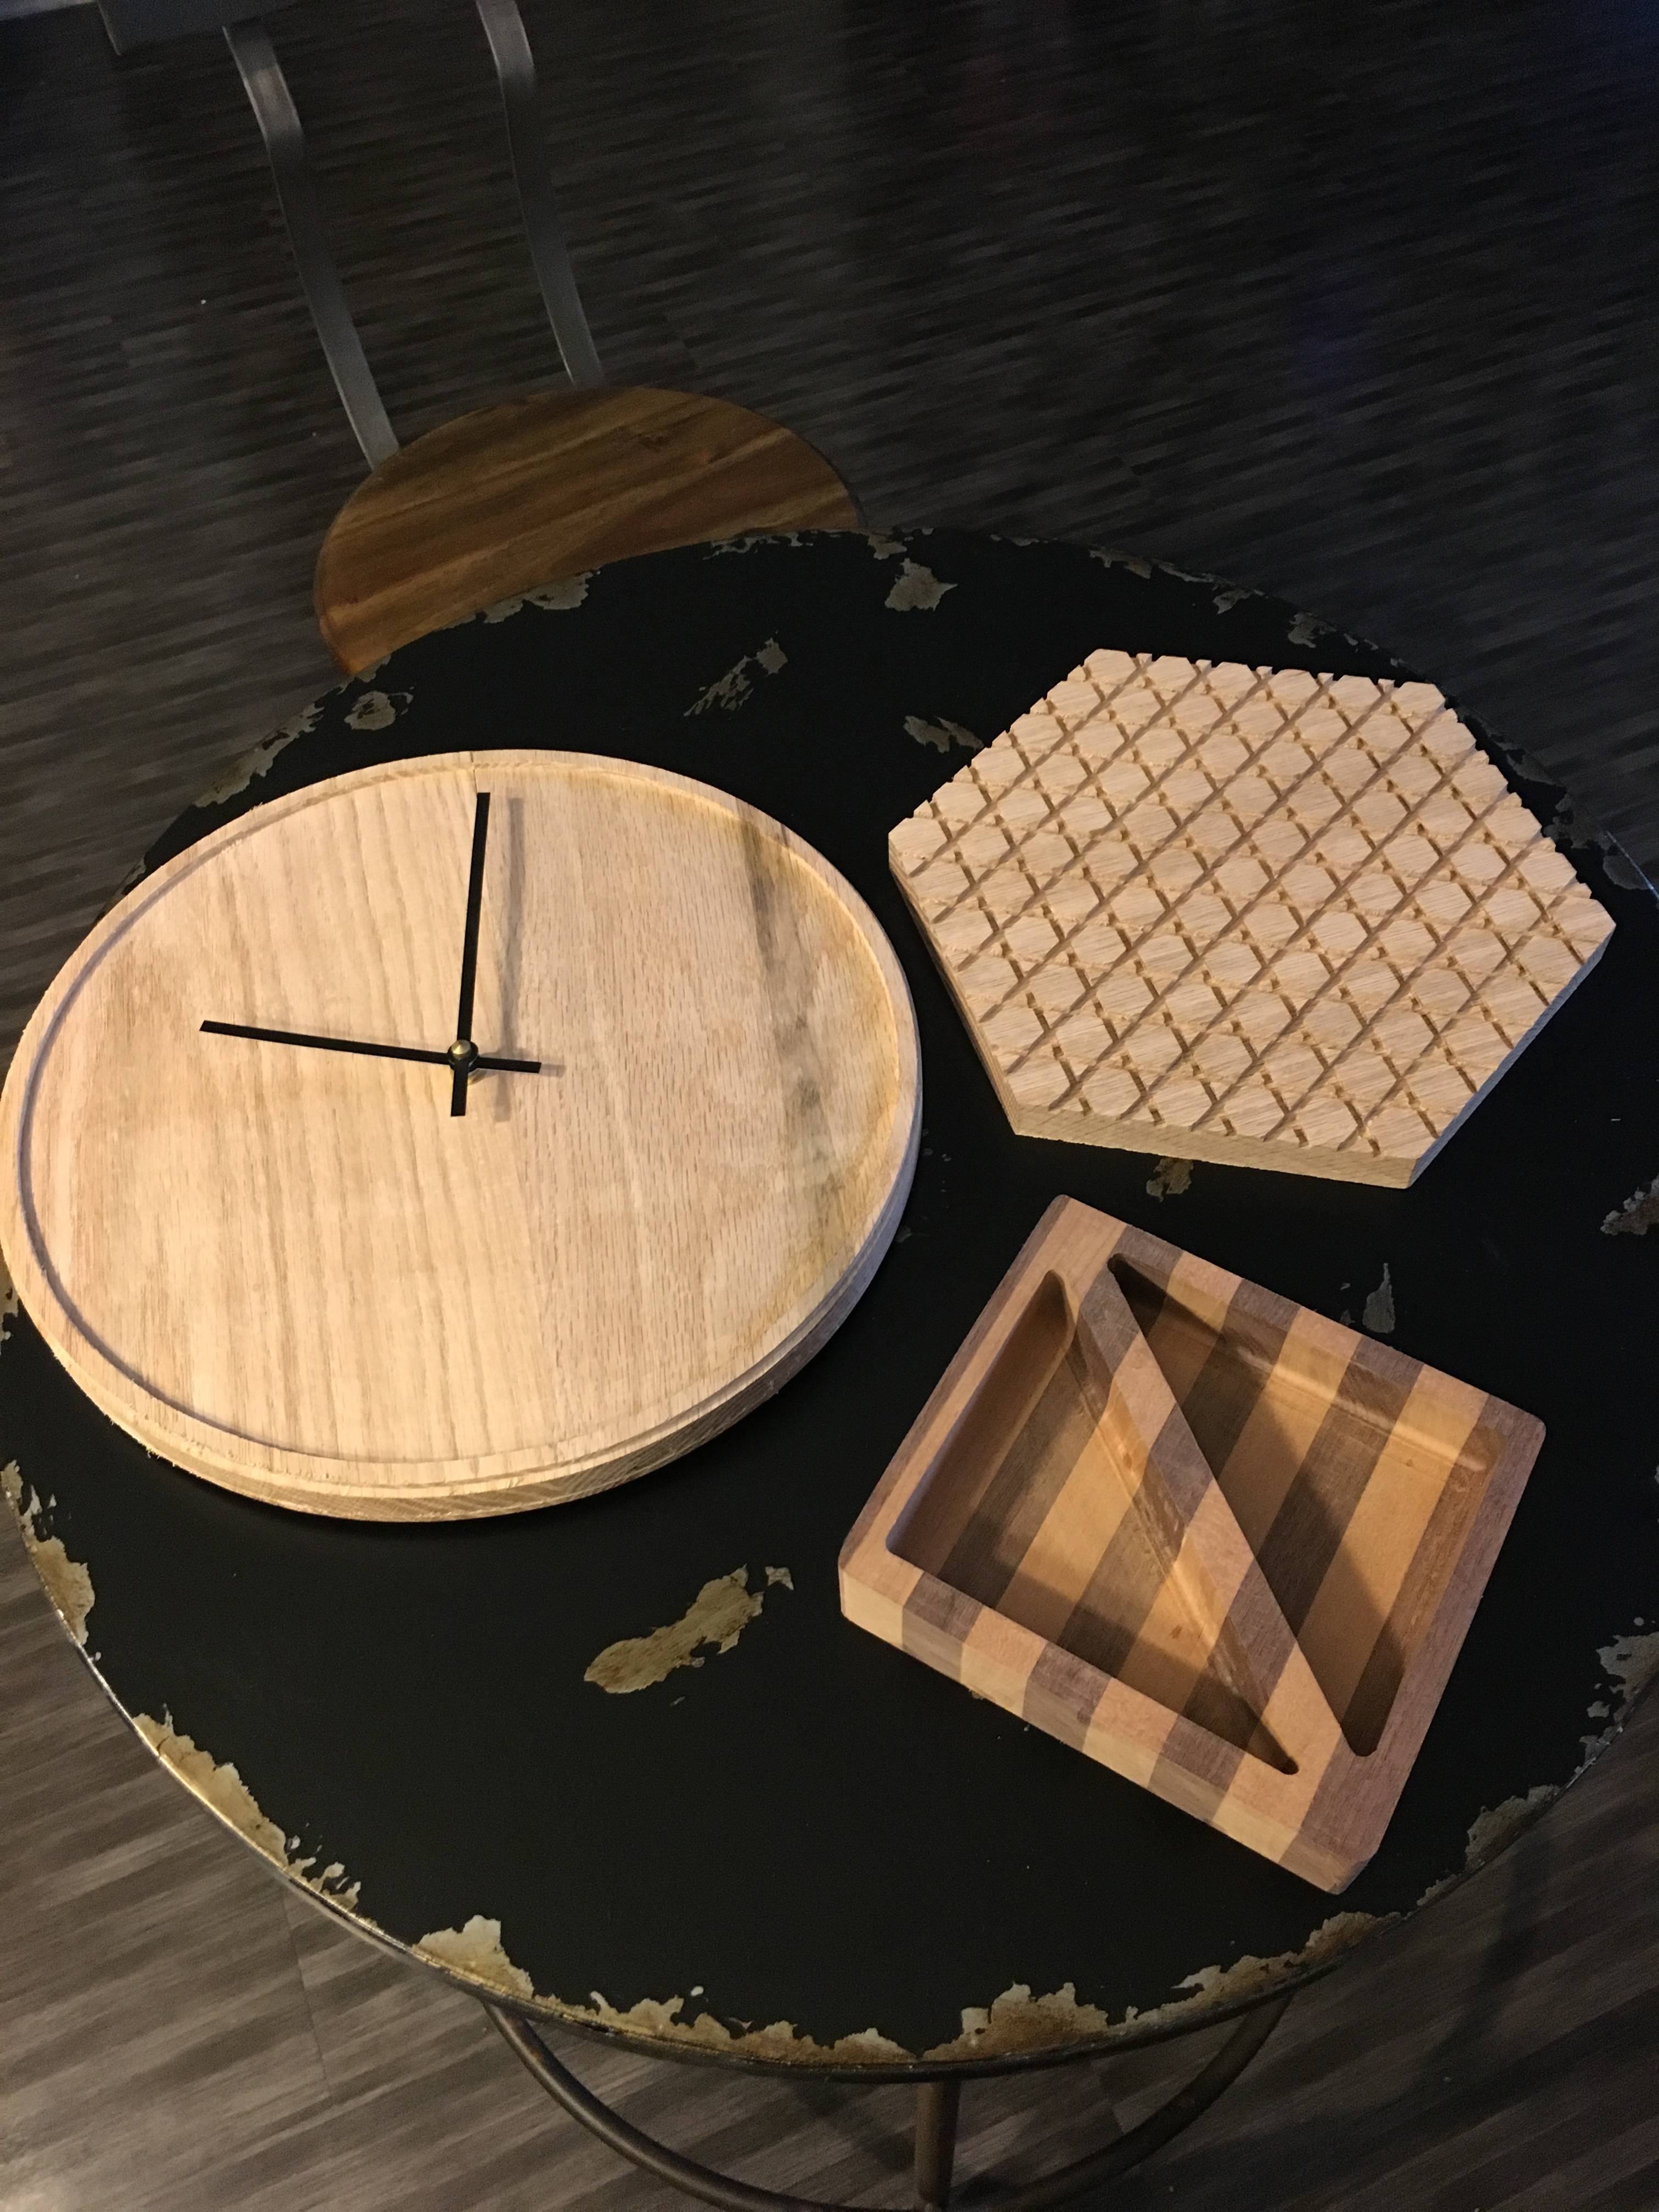 cnc projects Welcome to legacy cnc woodworking explore legacy's innovative line of 5-axis hybrid cnc machines and conversational cam software.